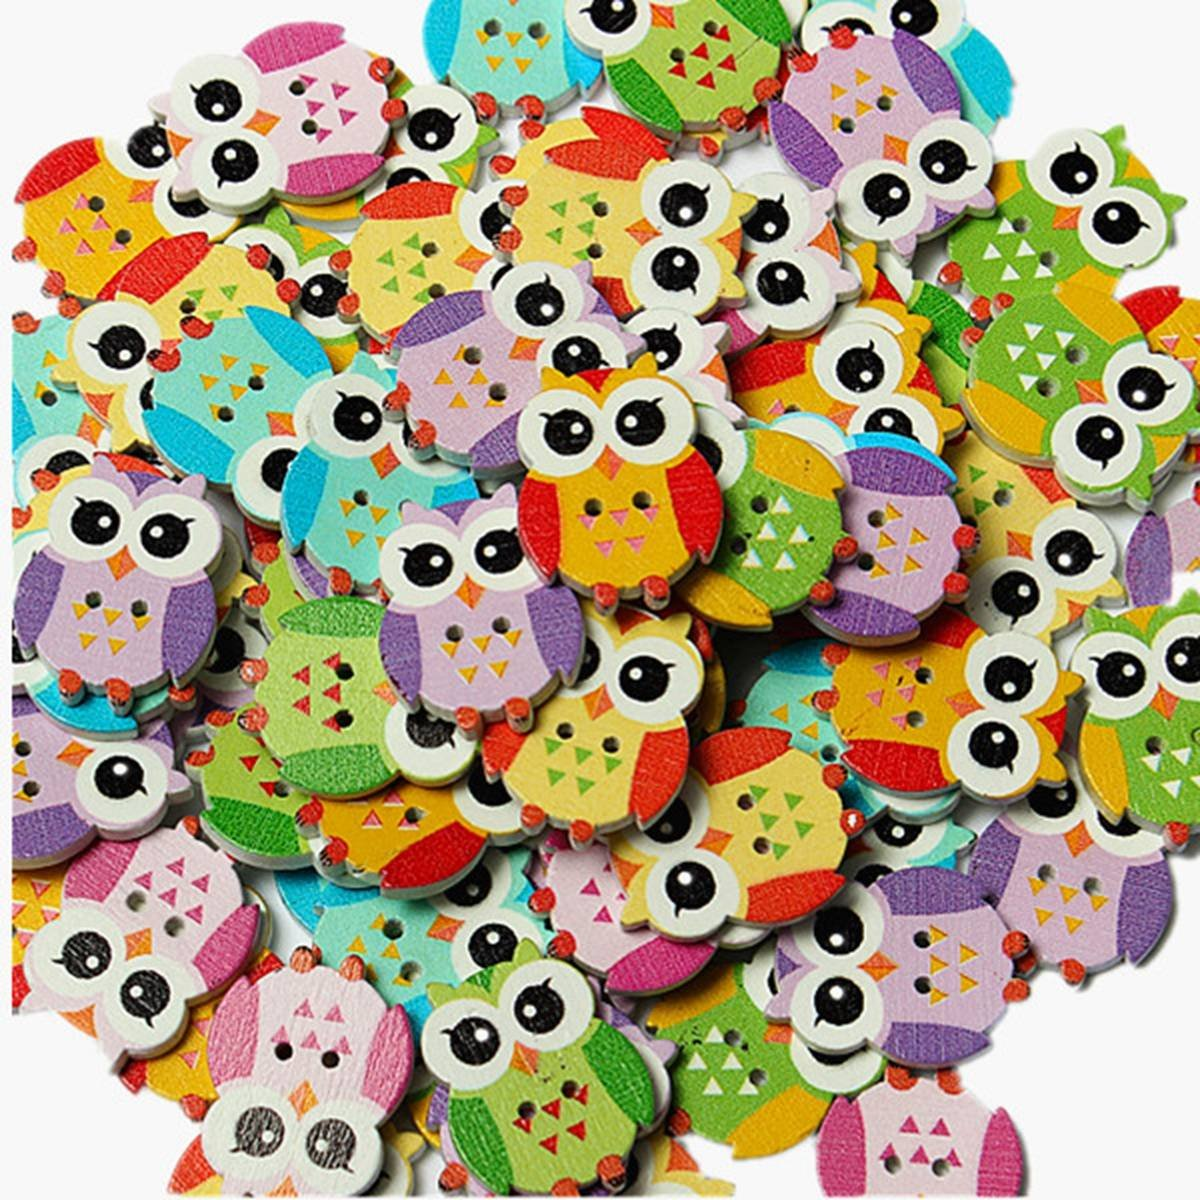 KINGSO 100Pcs Lovely Owl Animal Wooden Button Sewing Scrapbooking DIY Craft 2 Holes Mixed Color by King So KINGSO Co. LTD